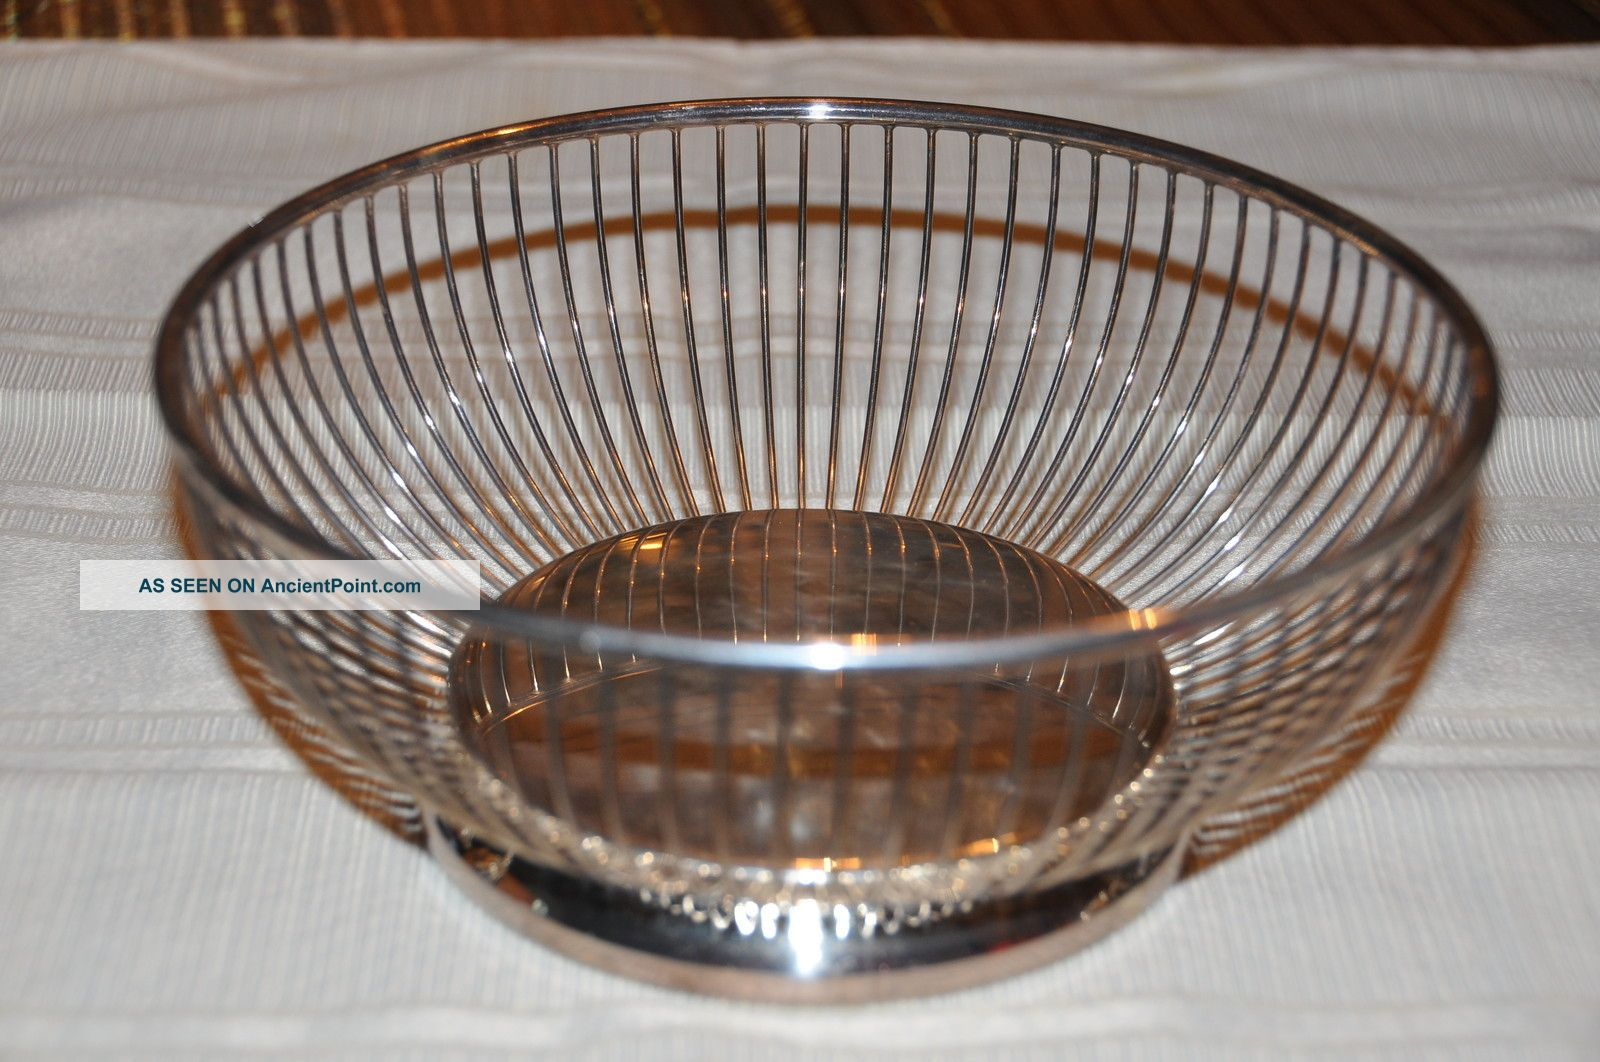 Gorham Ep Yc 741 Silverplated Bread Basket - Just. Baskets photo